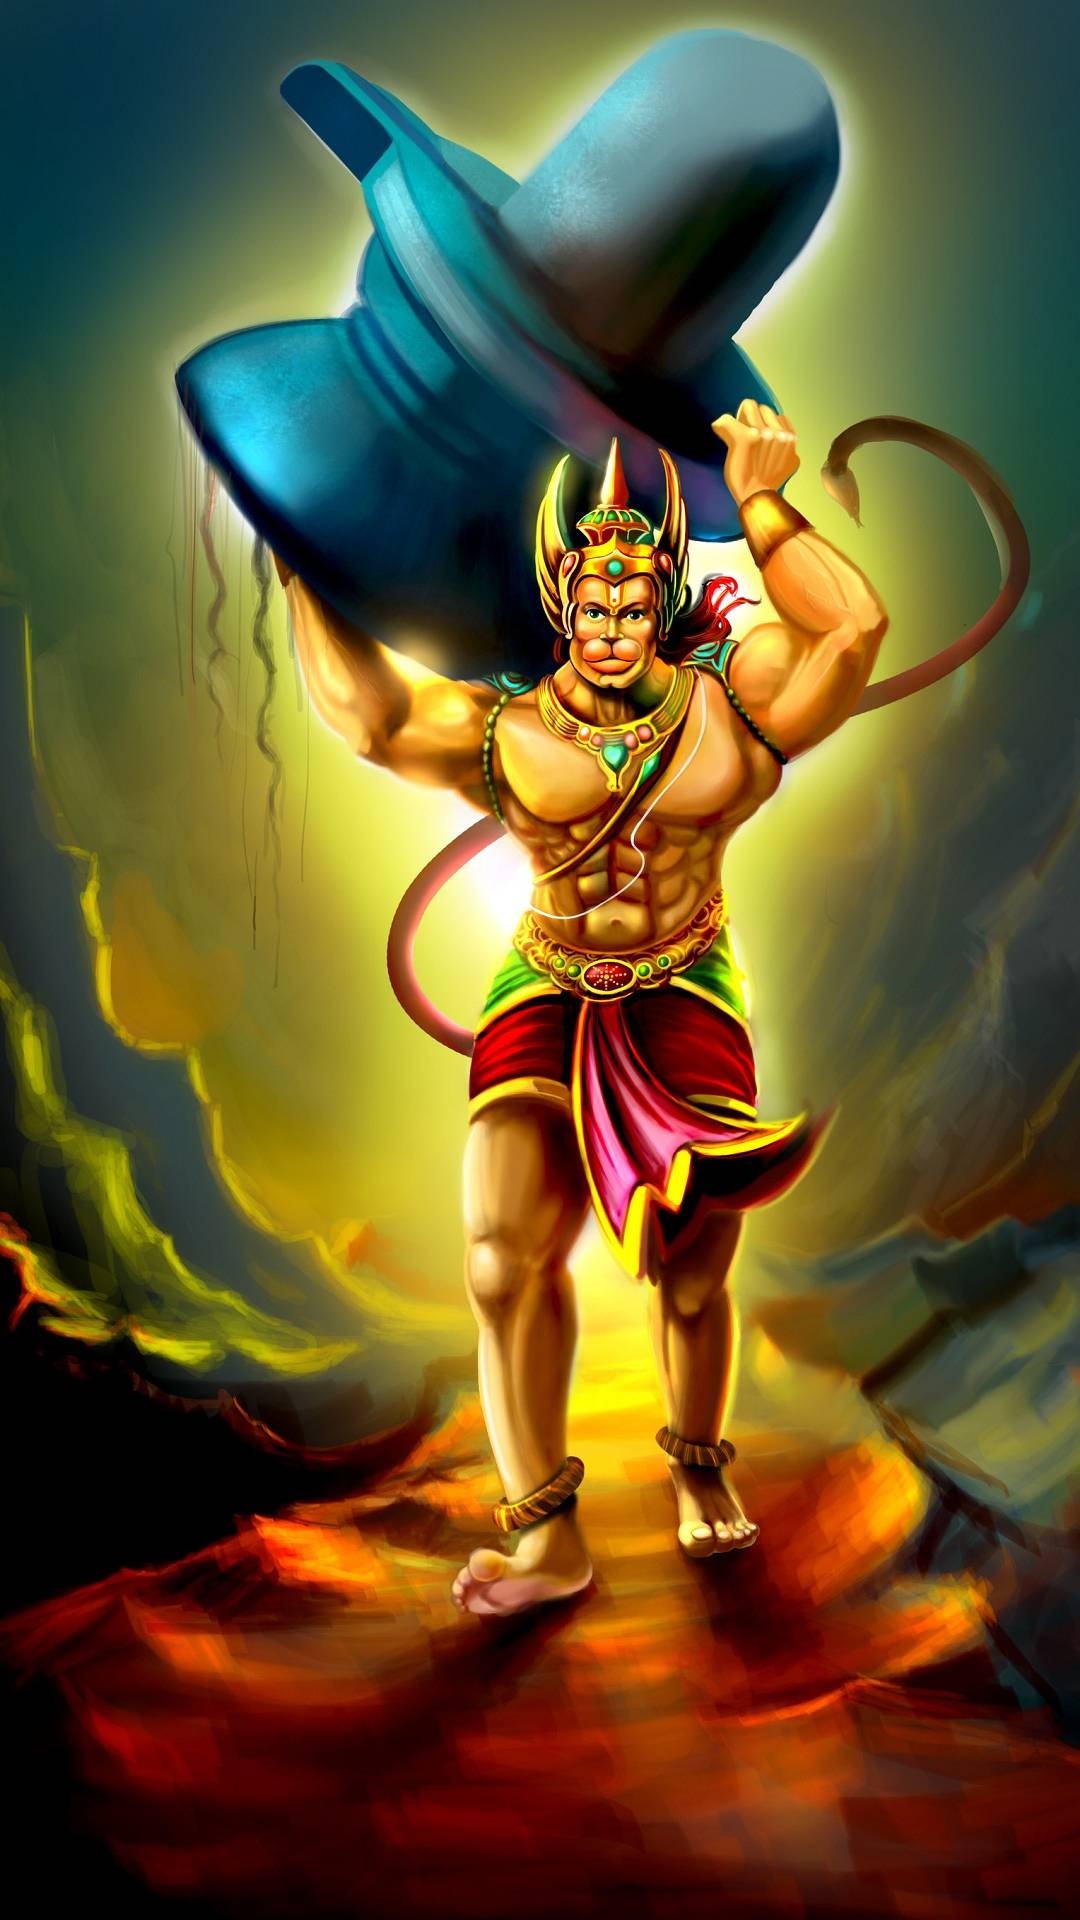 Shiva Animated Wallpaper Hd Lord Hanuman Iphone Wallpaper Iphone Wallpapers